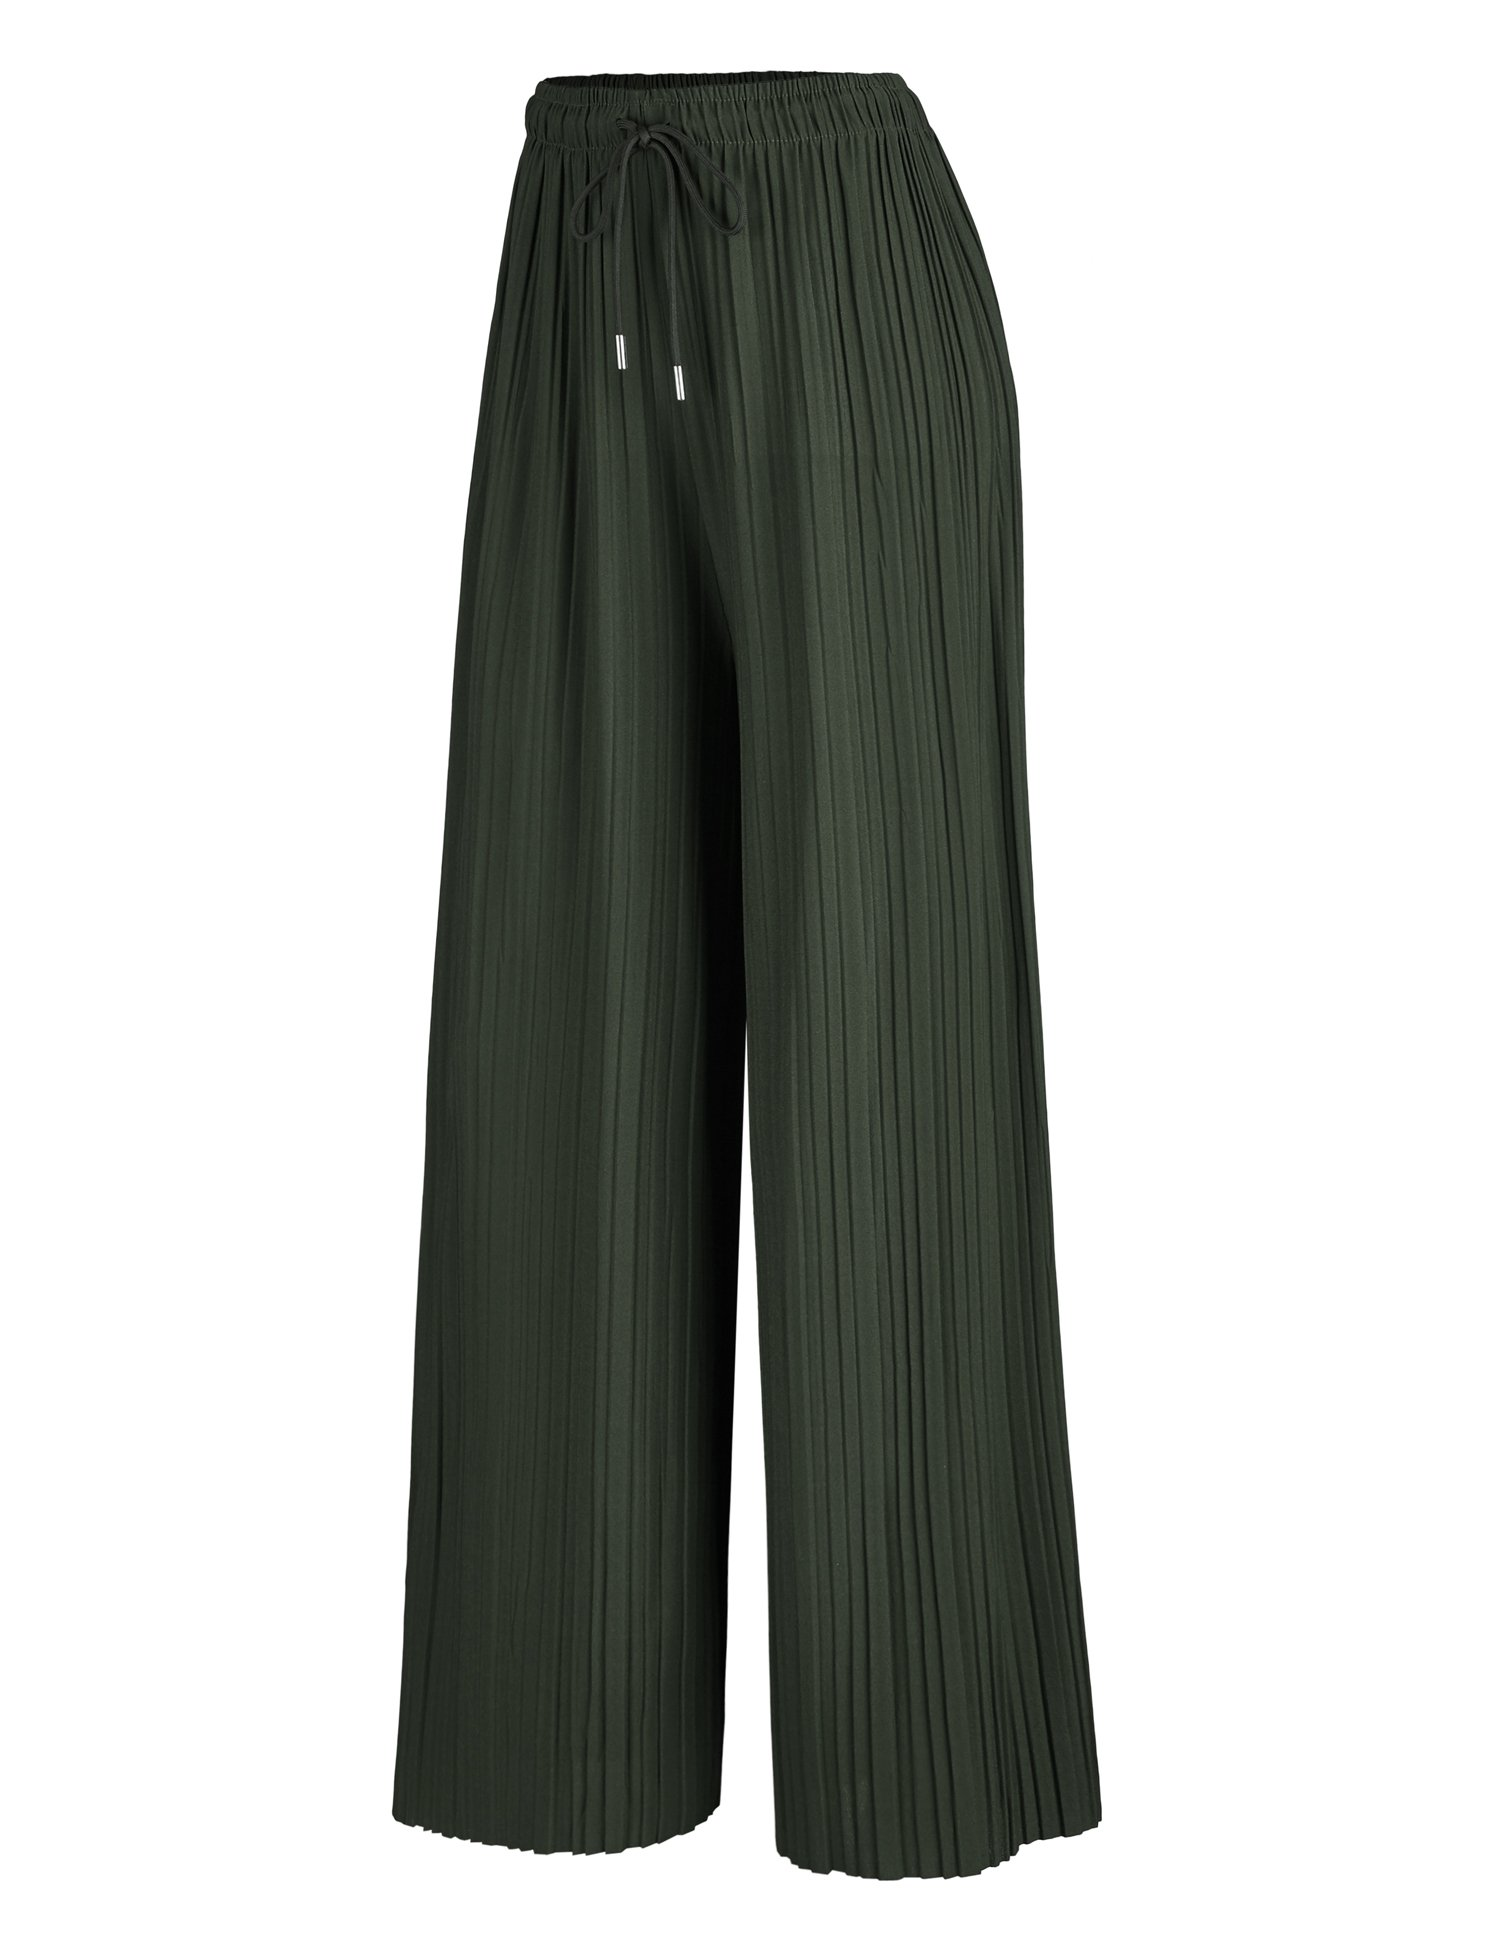 WB1485 Womens Pleated Palazzo Pants With Drawstring OS Olive